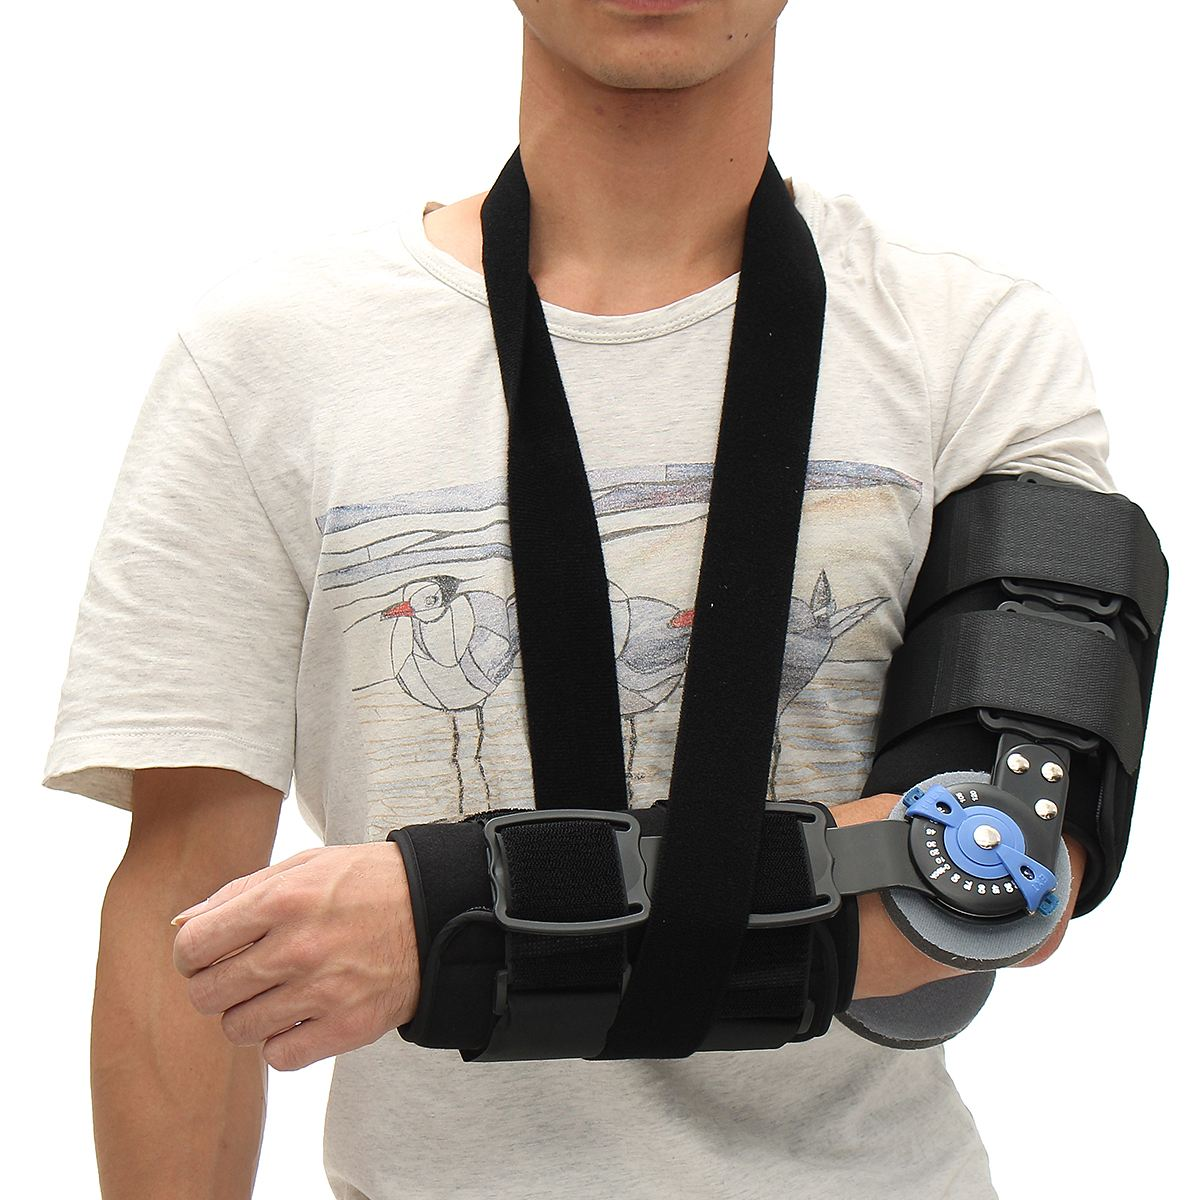 Professional Elbow Arm Sling Brace Support Shoulder Immobilizer Guard With Strap factory direct sale hinge elbow brace arm support medical orthopedic orthotics supports